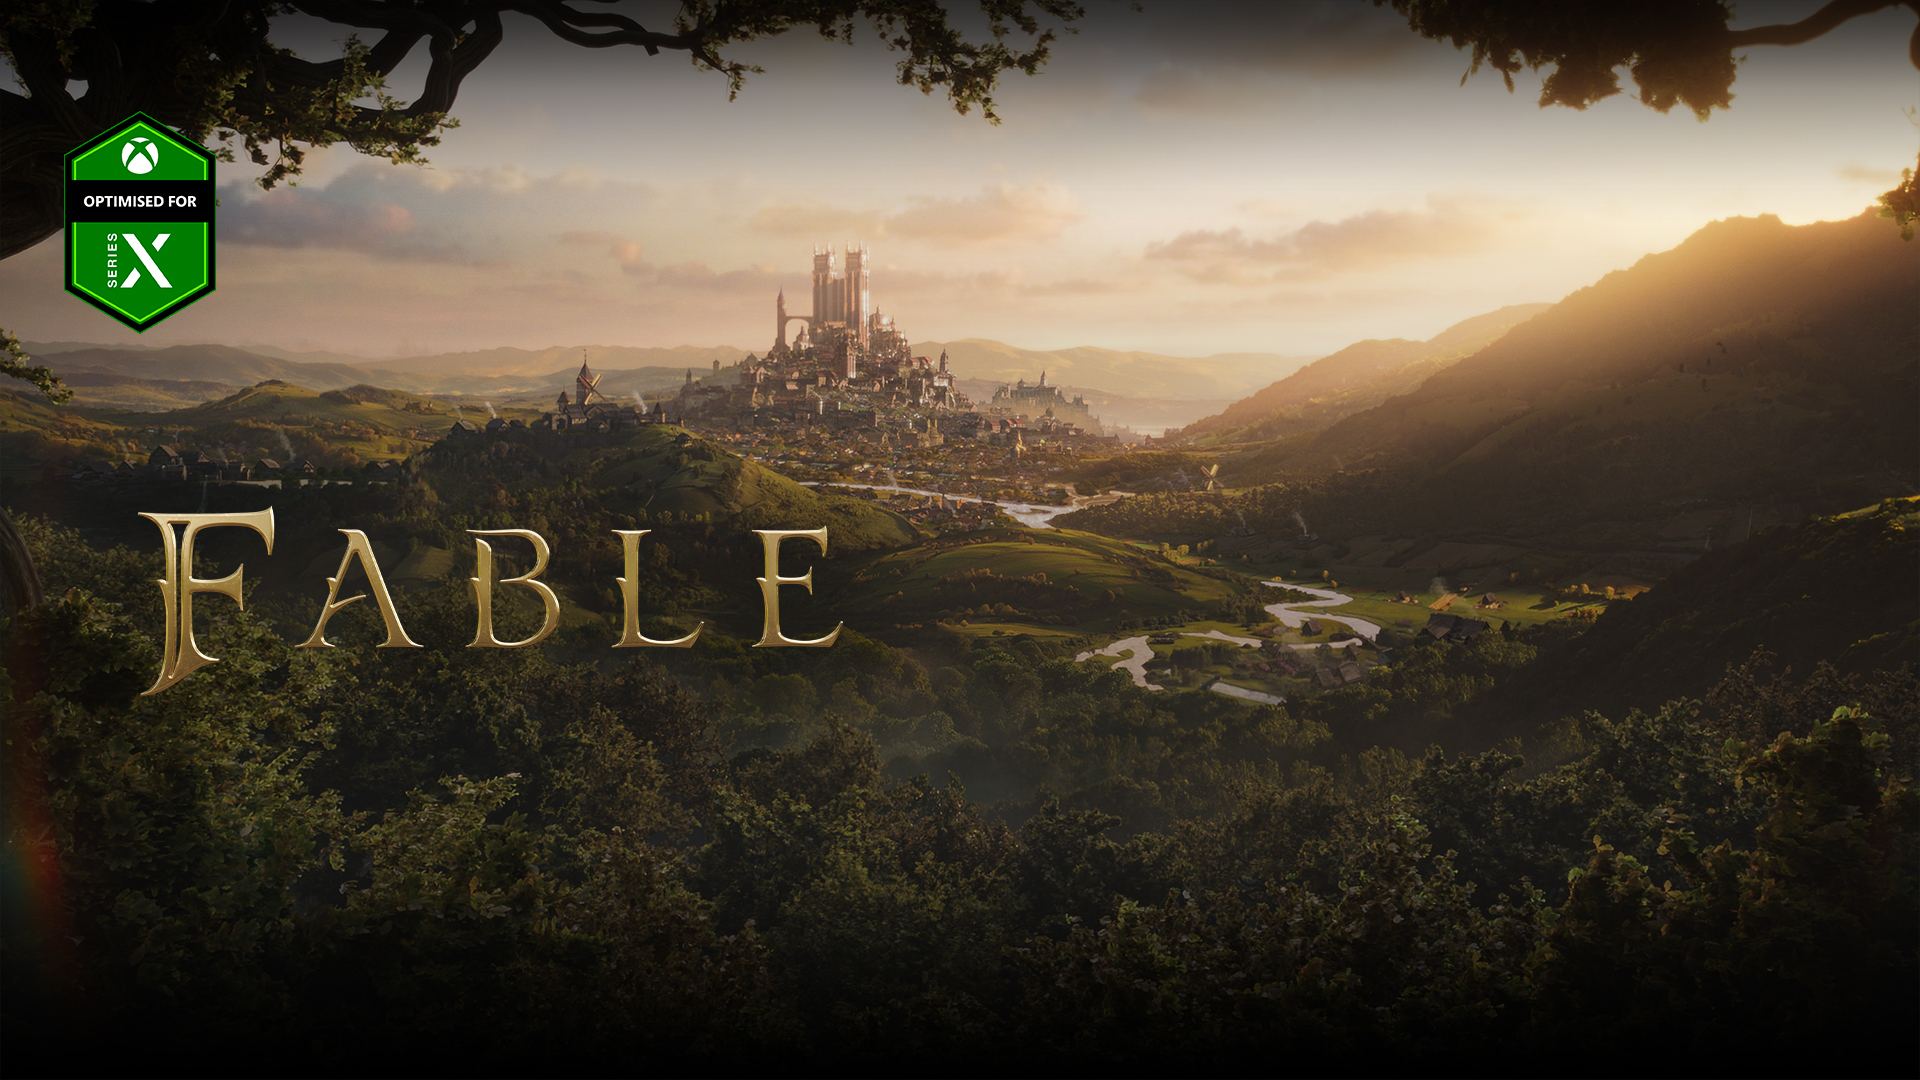 Optimised for Xbox Series X logo, Fable, a city past a forest and valleys